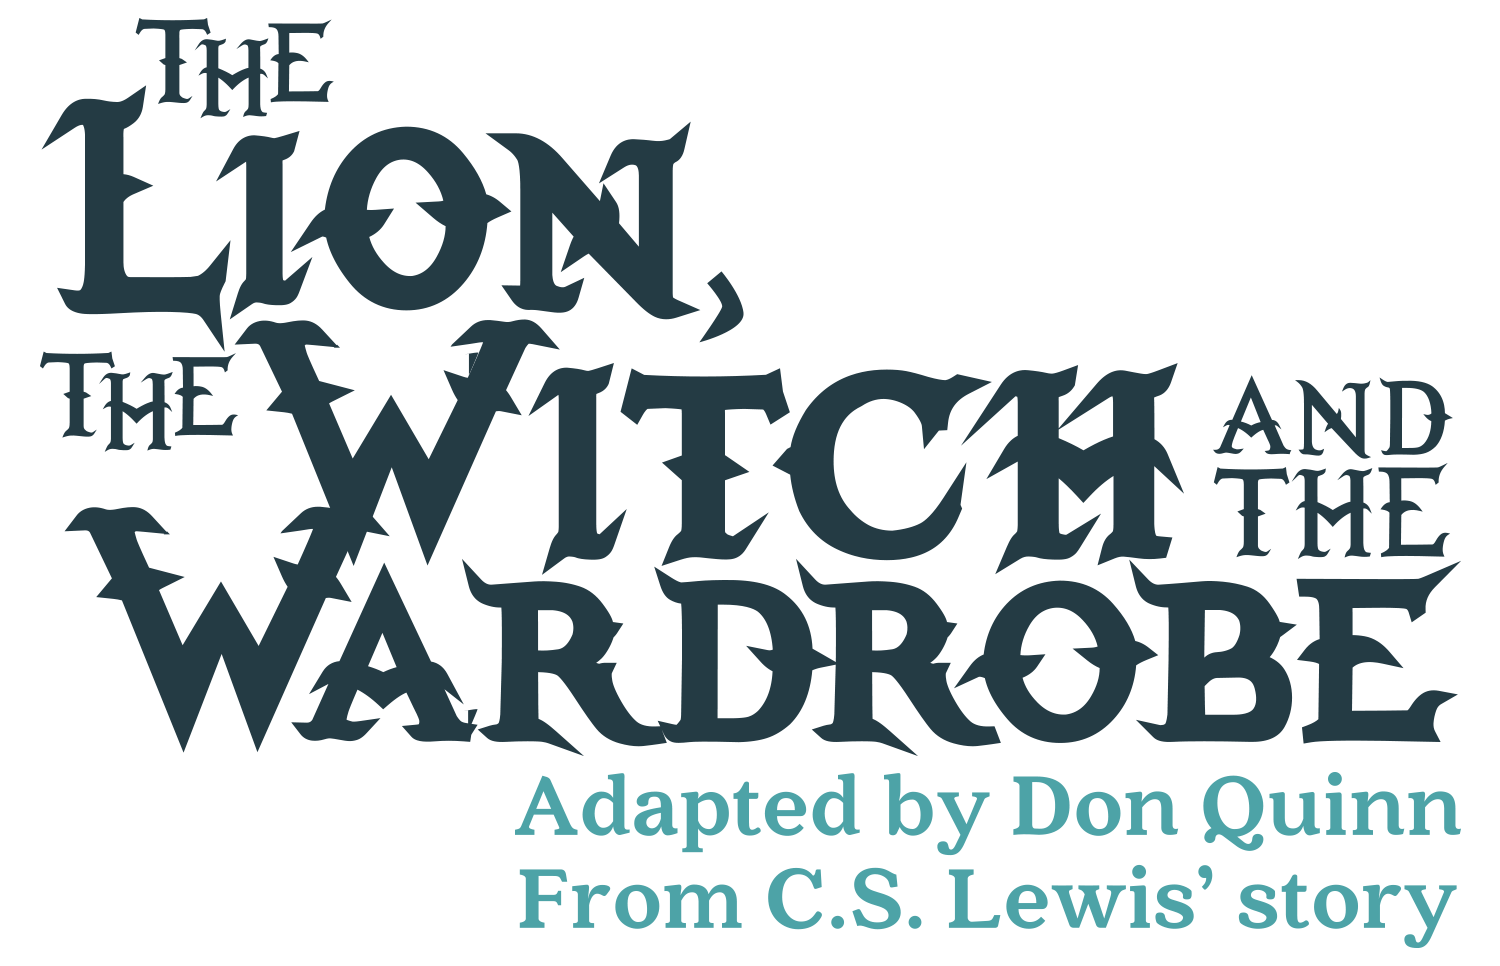 The Lion, the Witch, and the Wardrobe adapted by Don Quinn from C.S. Lewis' story